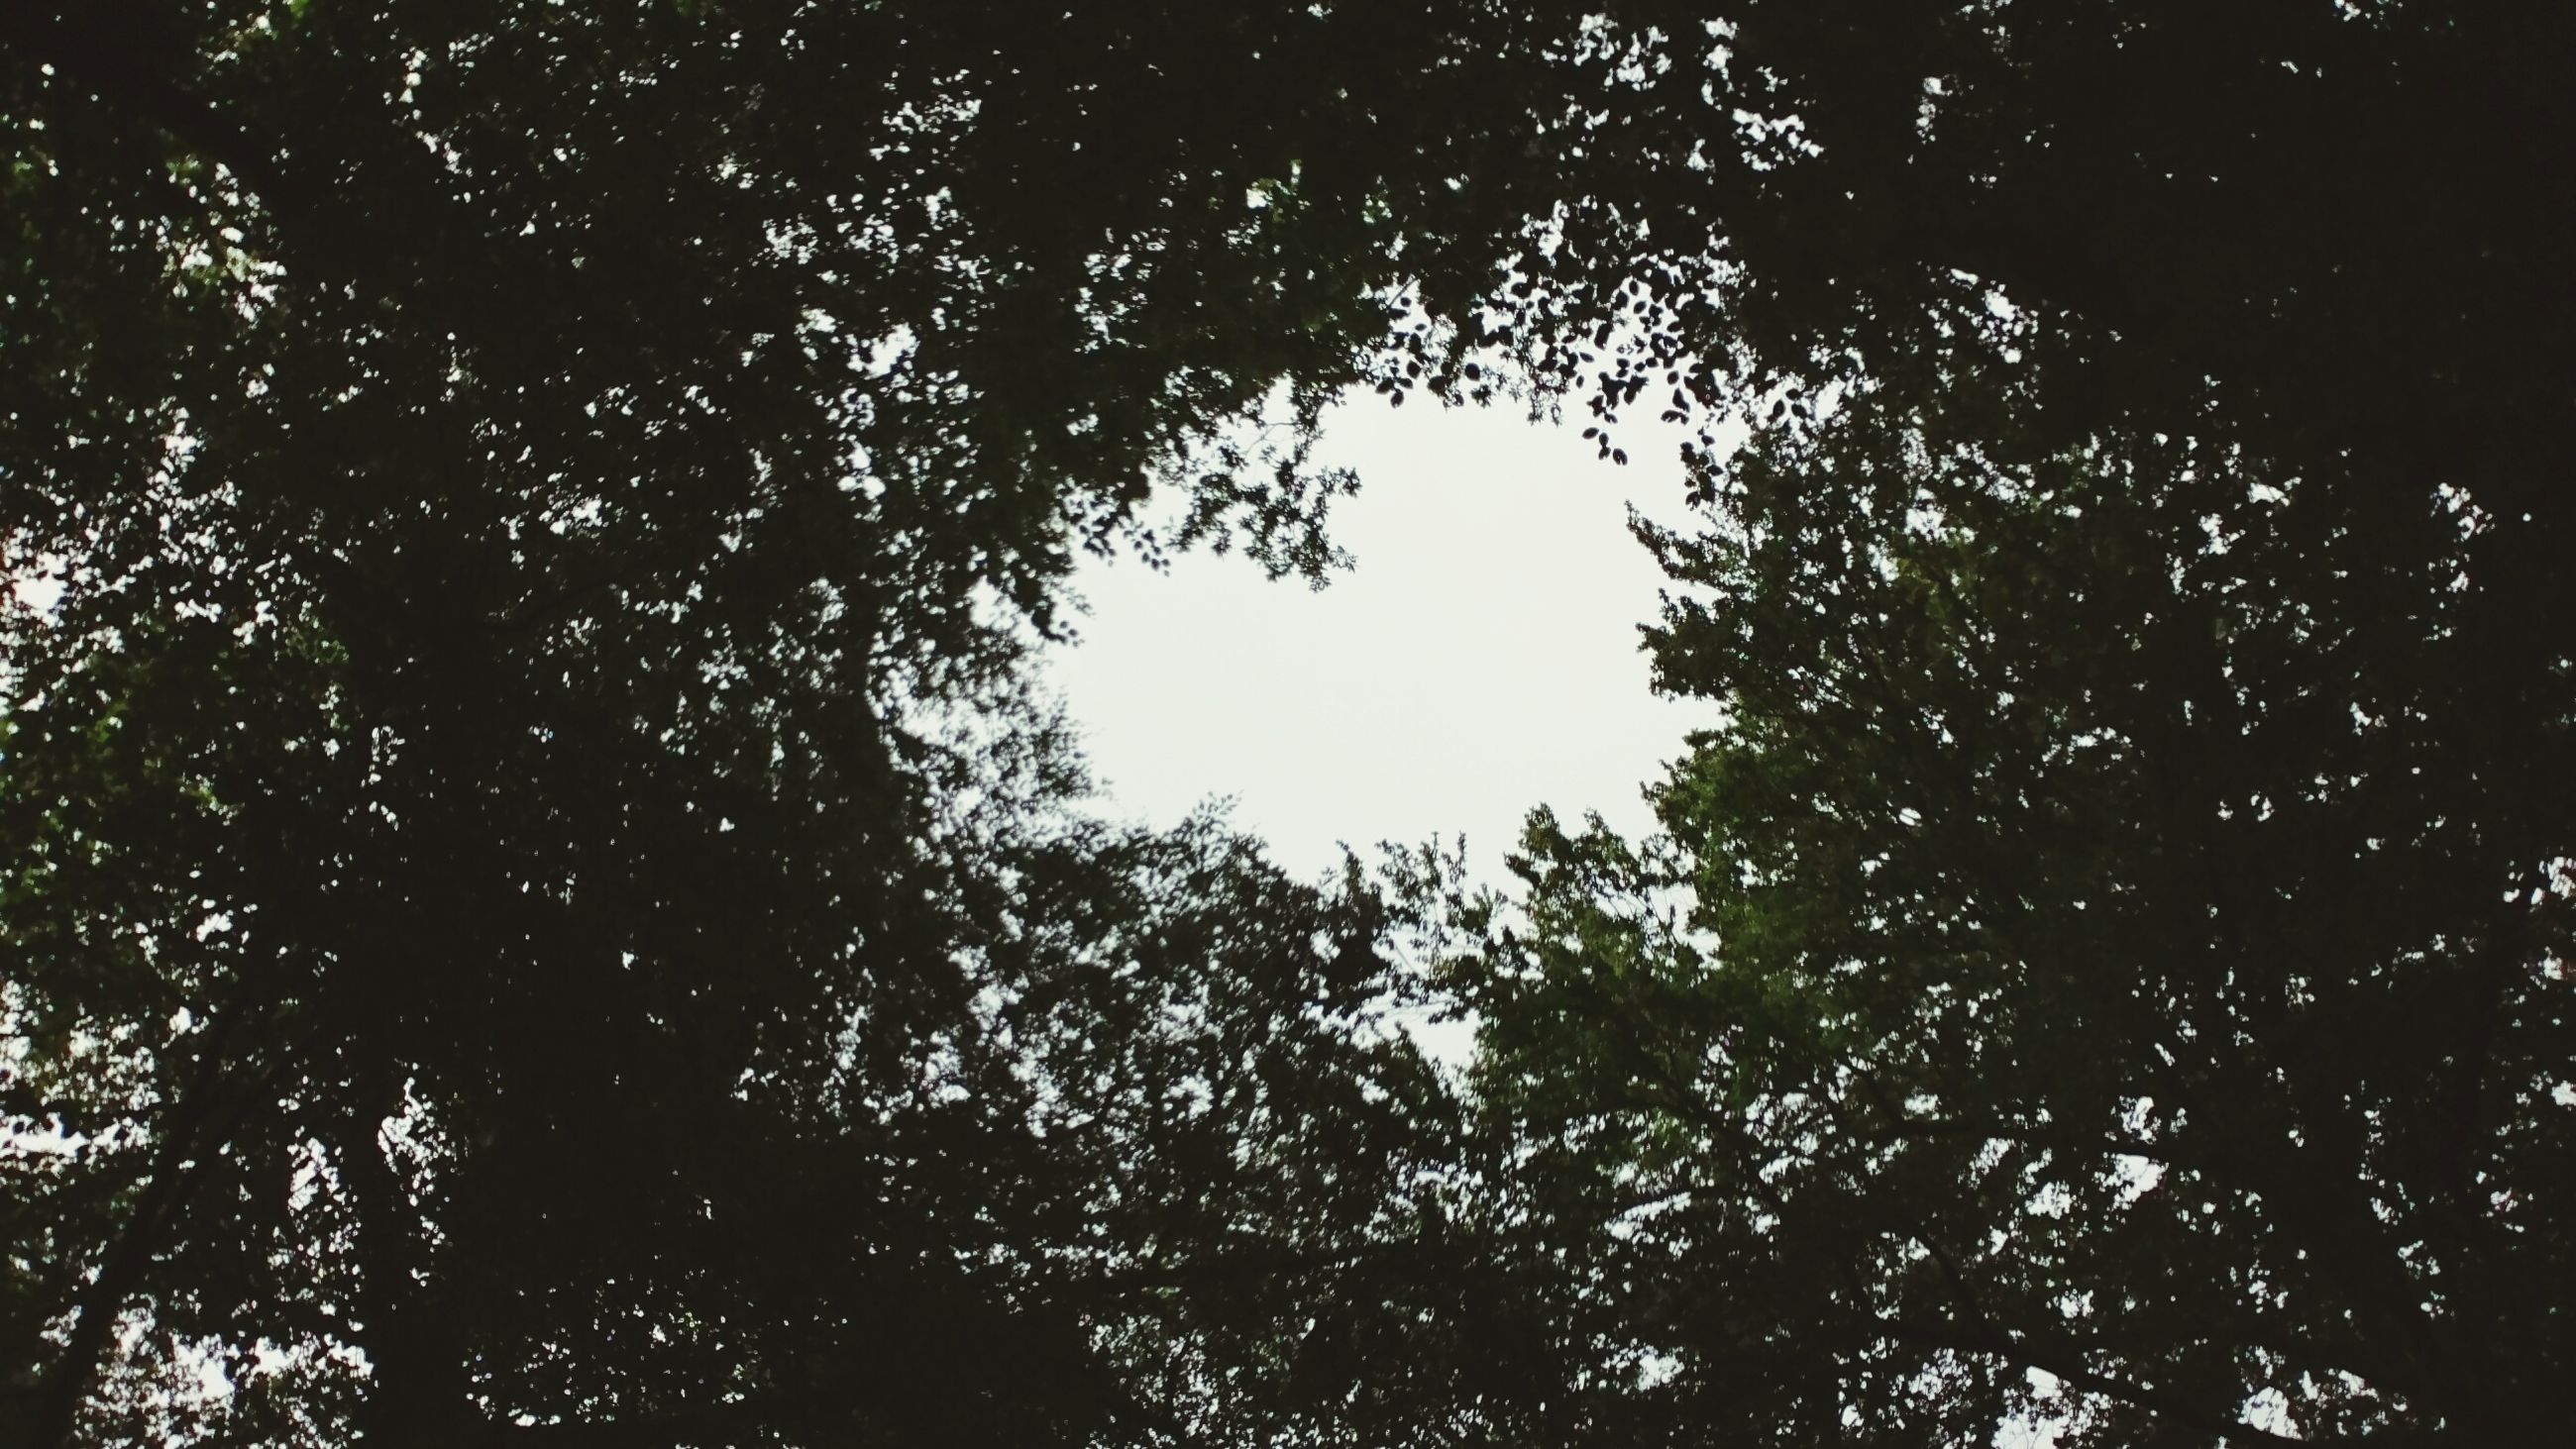 tree, low angle view, silhouette, growth, branch, tranquility, nature, outline, clear sky, tranquil scene, scenics, beauty in nature, day, sky, outdoors, non-urban scene, lush foliage, treetop, solitude, high section, no people, green color